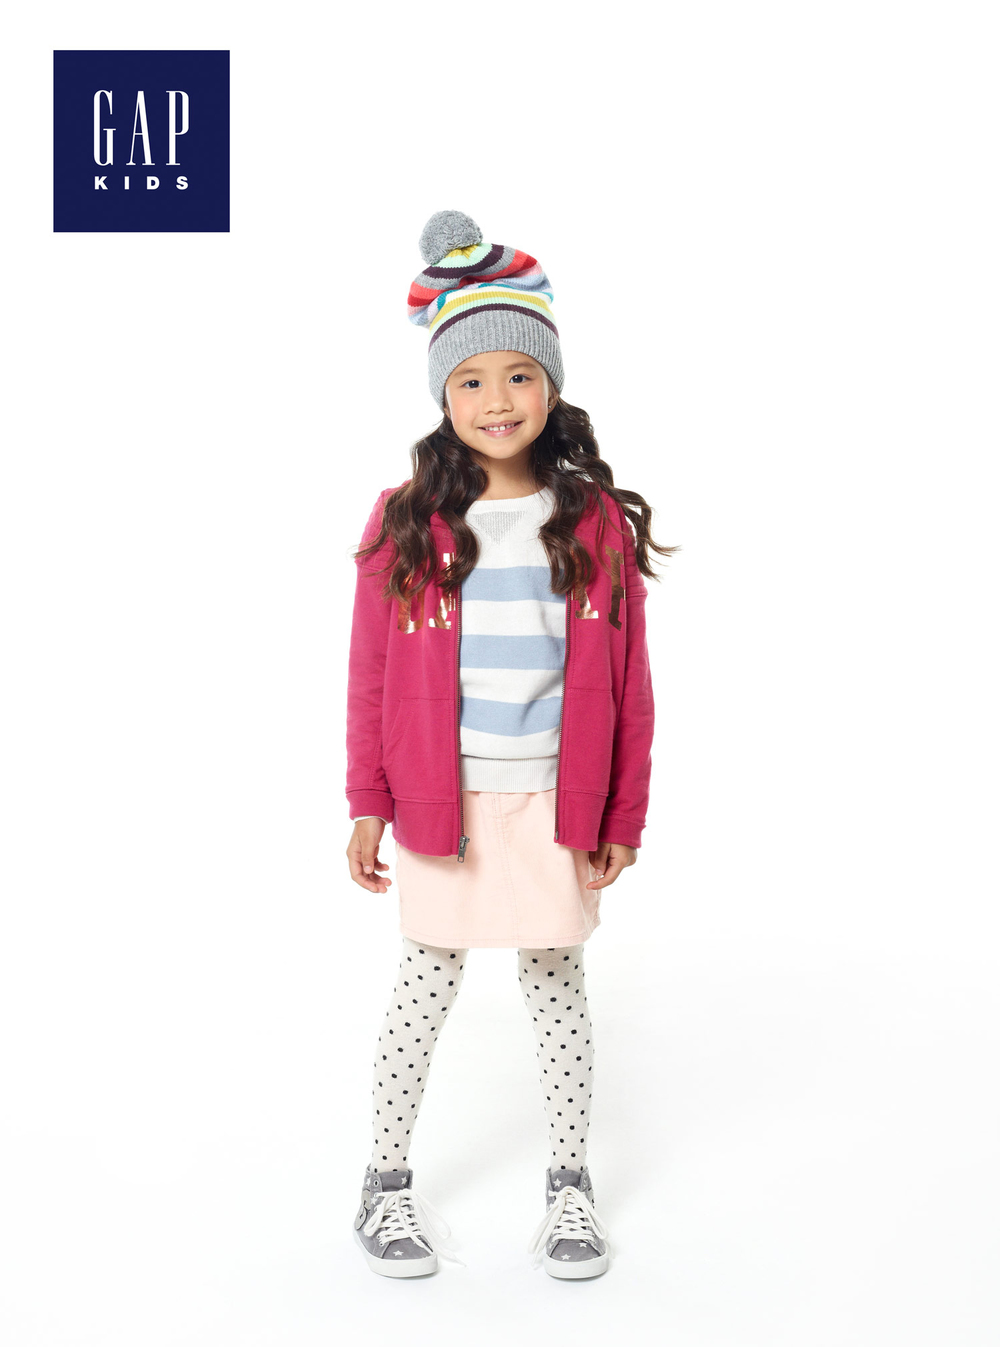 20141018--Gap-Kids-60783---Mark-2.jpg